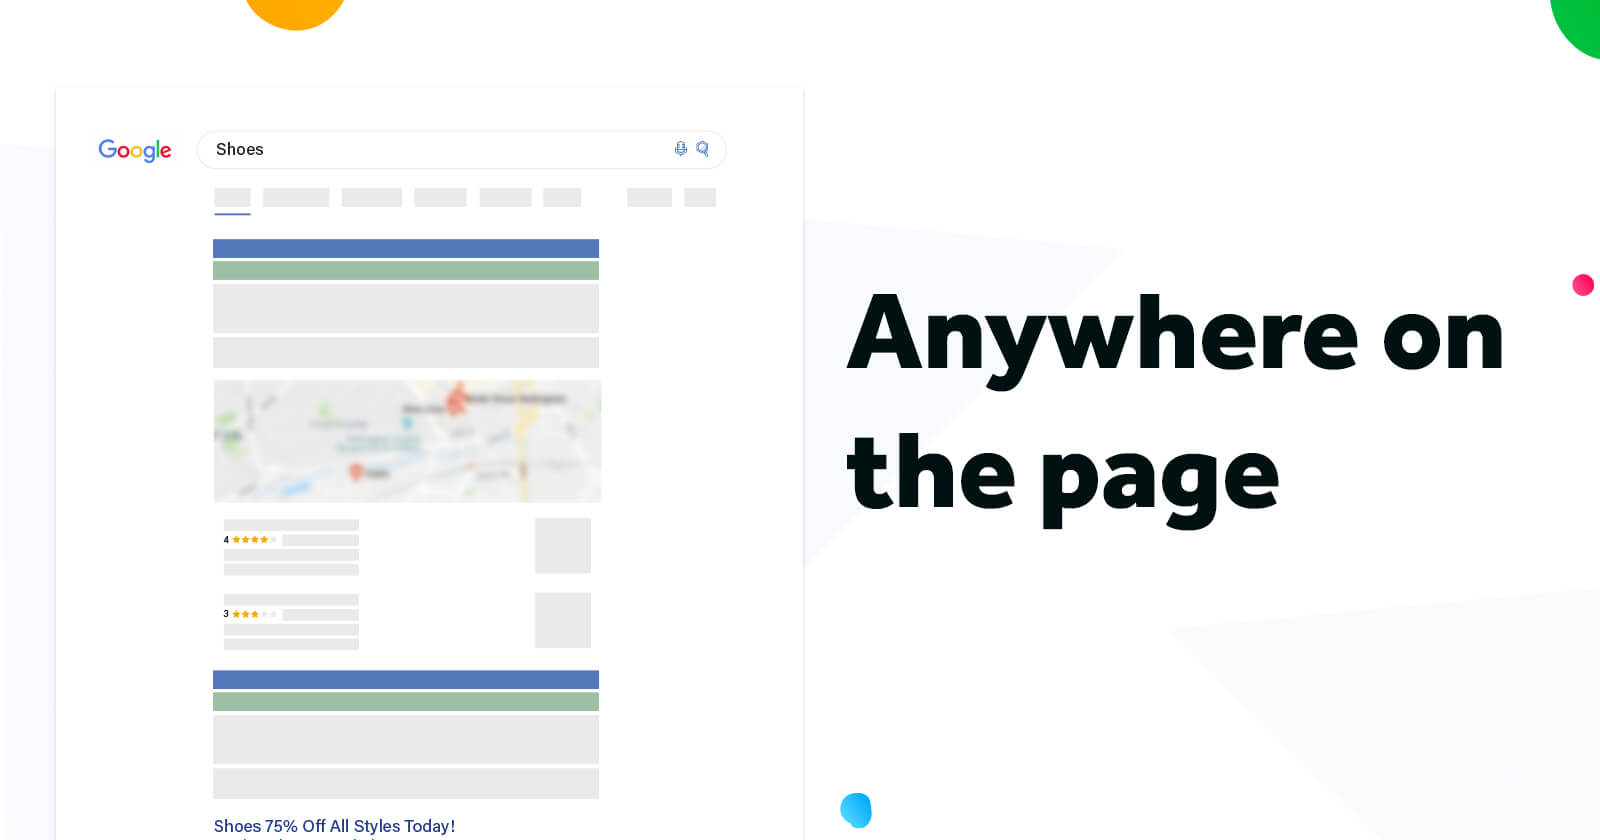 This image shows what it looks like to be anywhere on the page for Google Ads